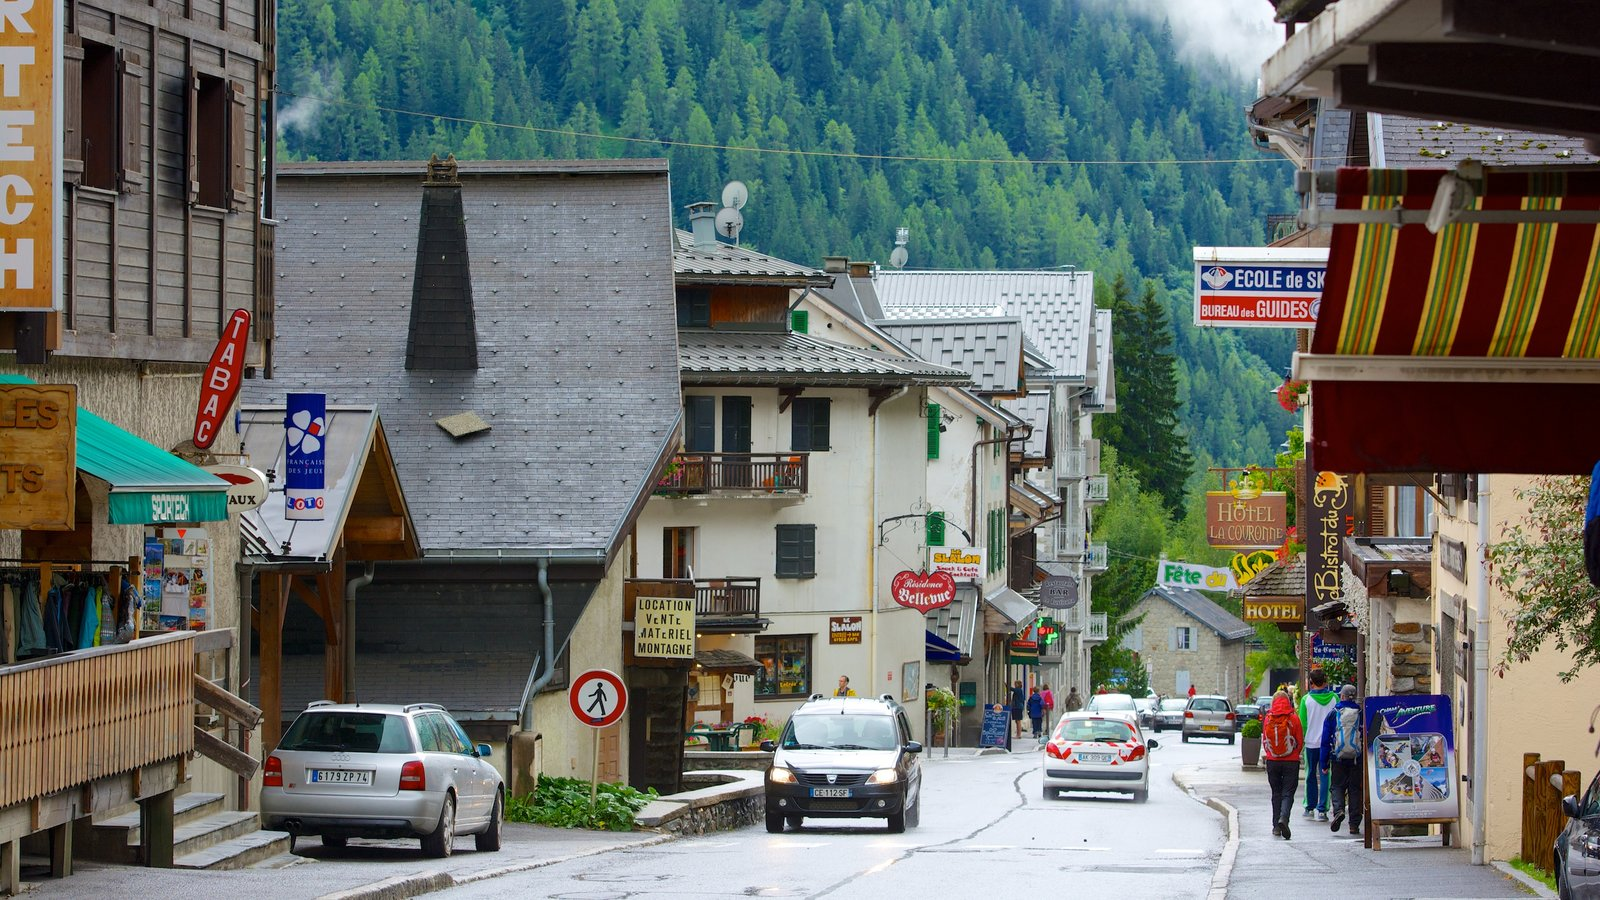 Argentiere featuring street scenes and a small town or village